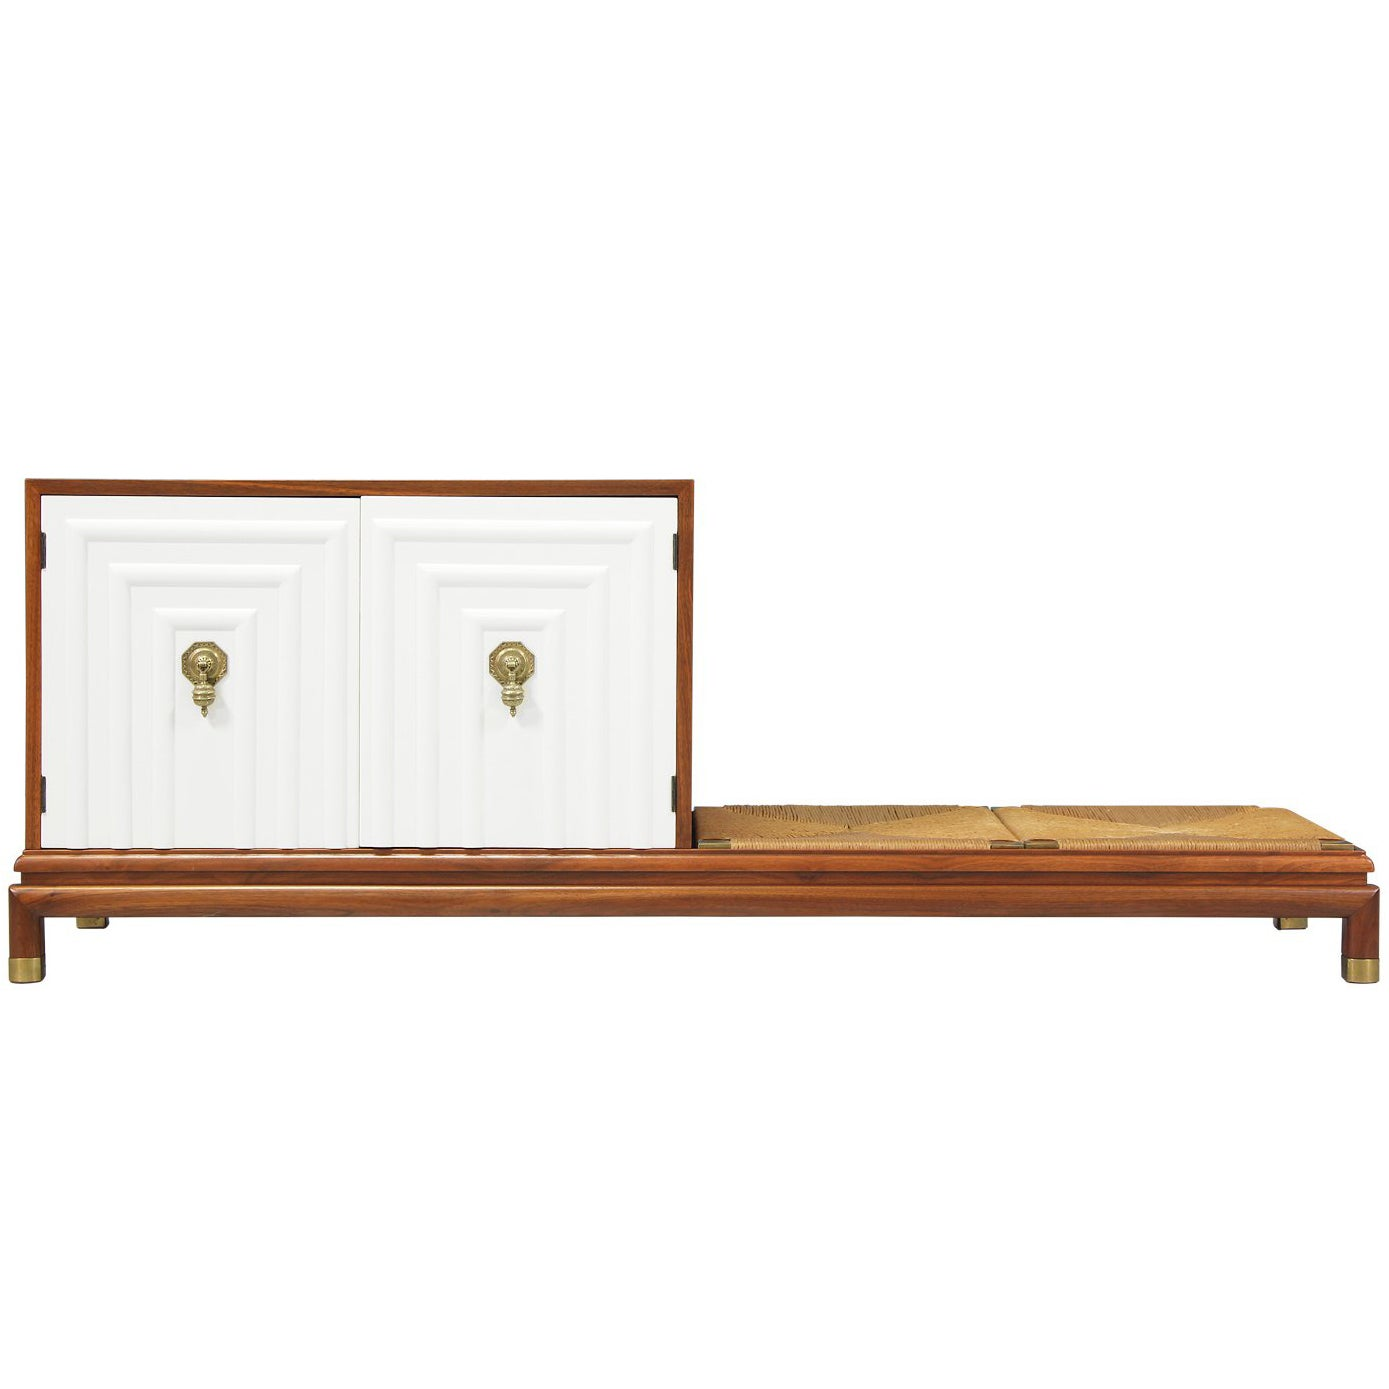 Renzo Rutili Credenza with Seating Bench for Johnson Furniture